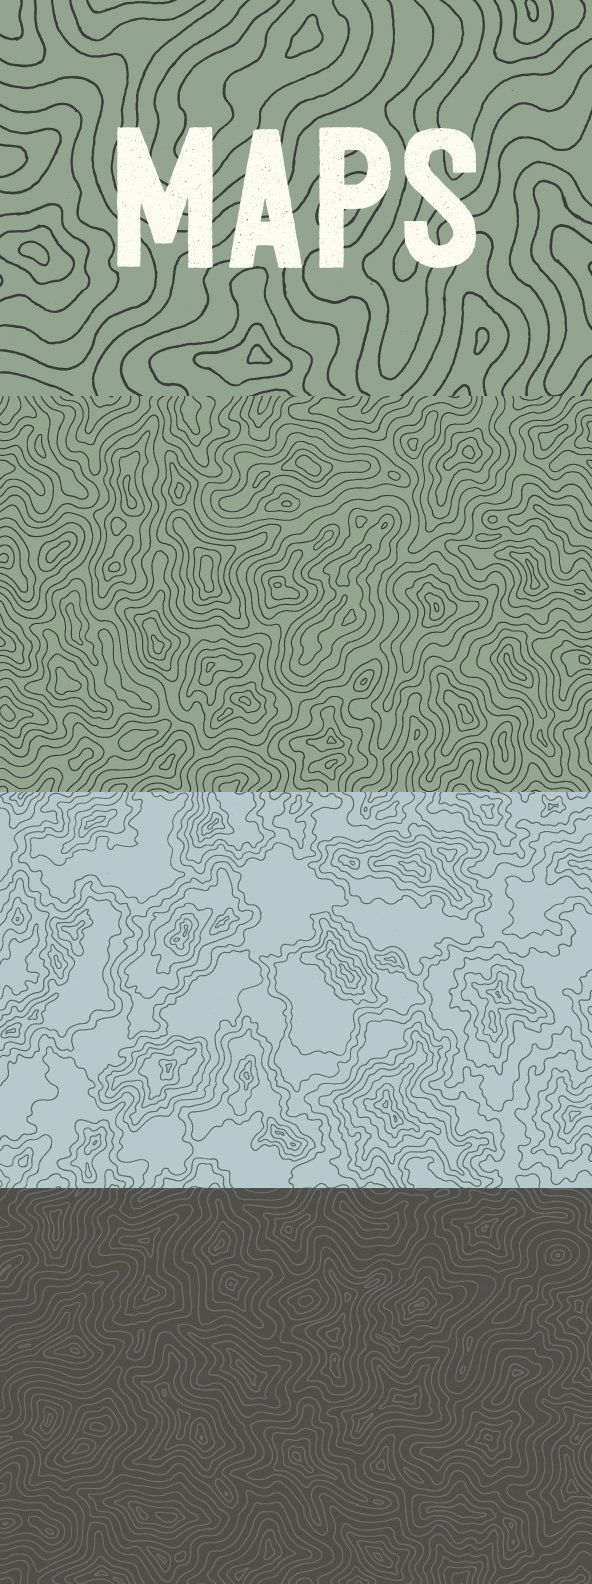 Topographic Elevation Maps - This hand-illustrated set of three topographic maps draws inspiration from the...